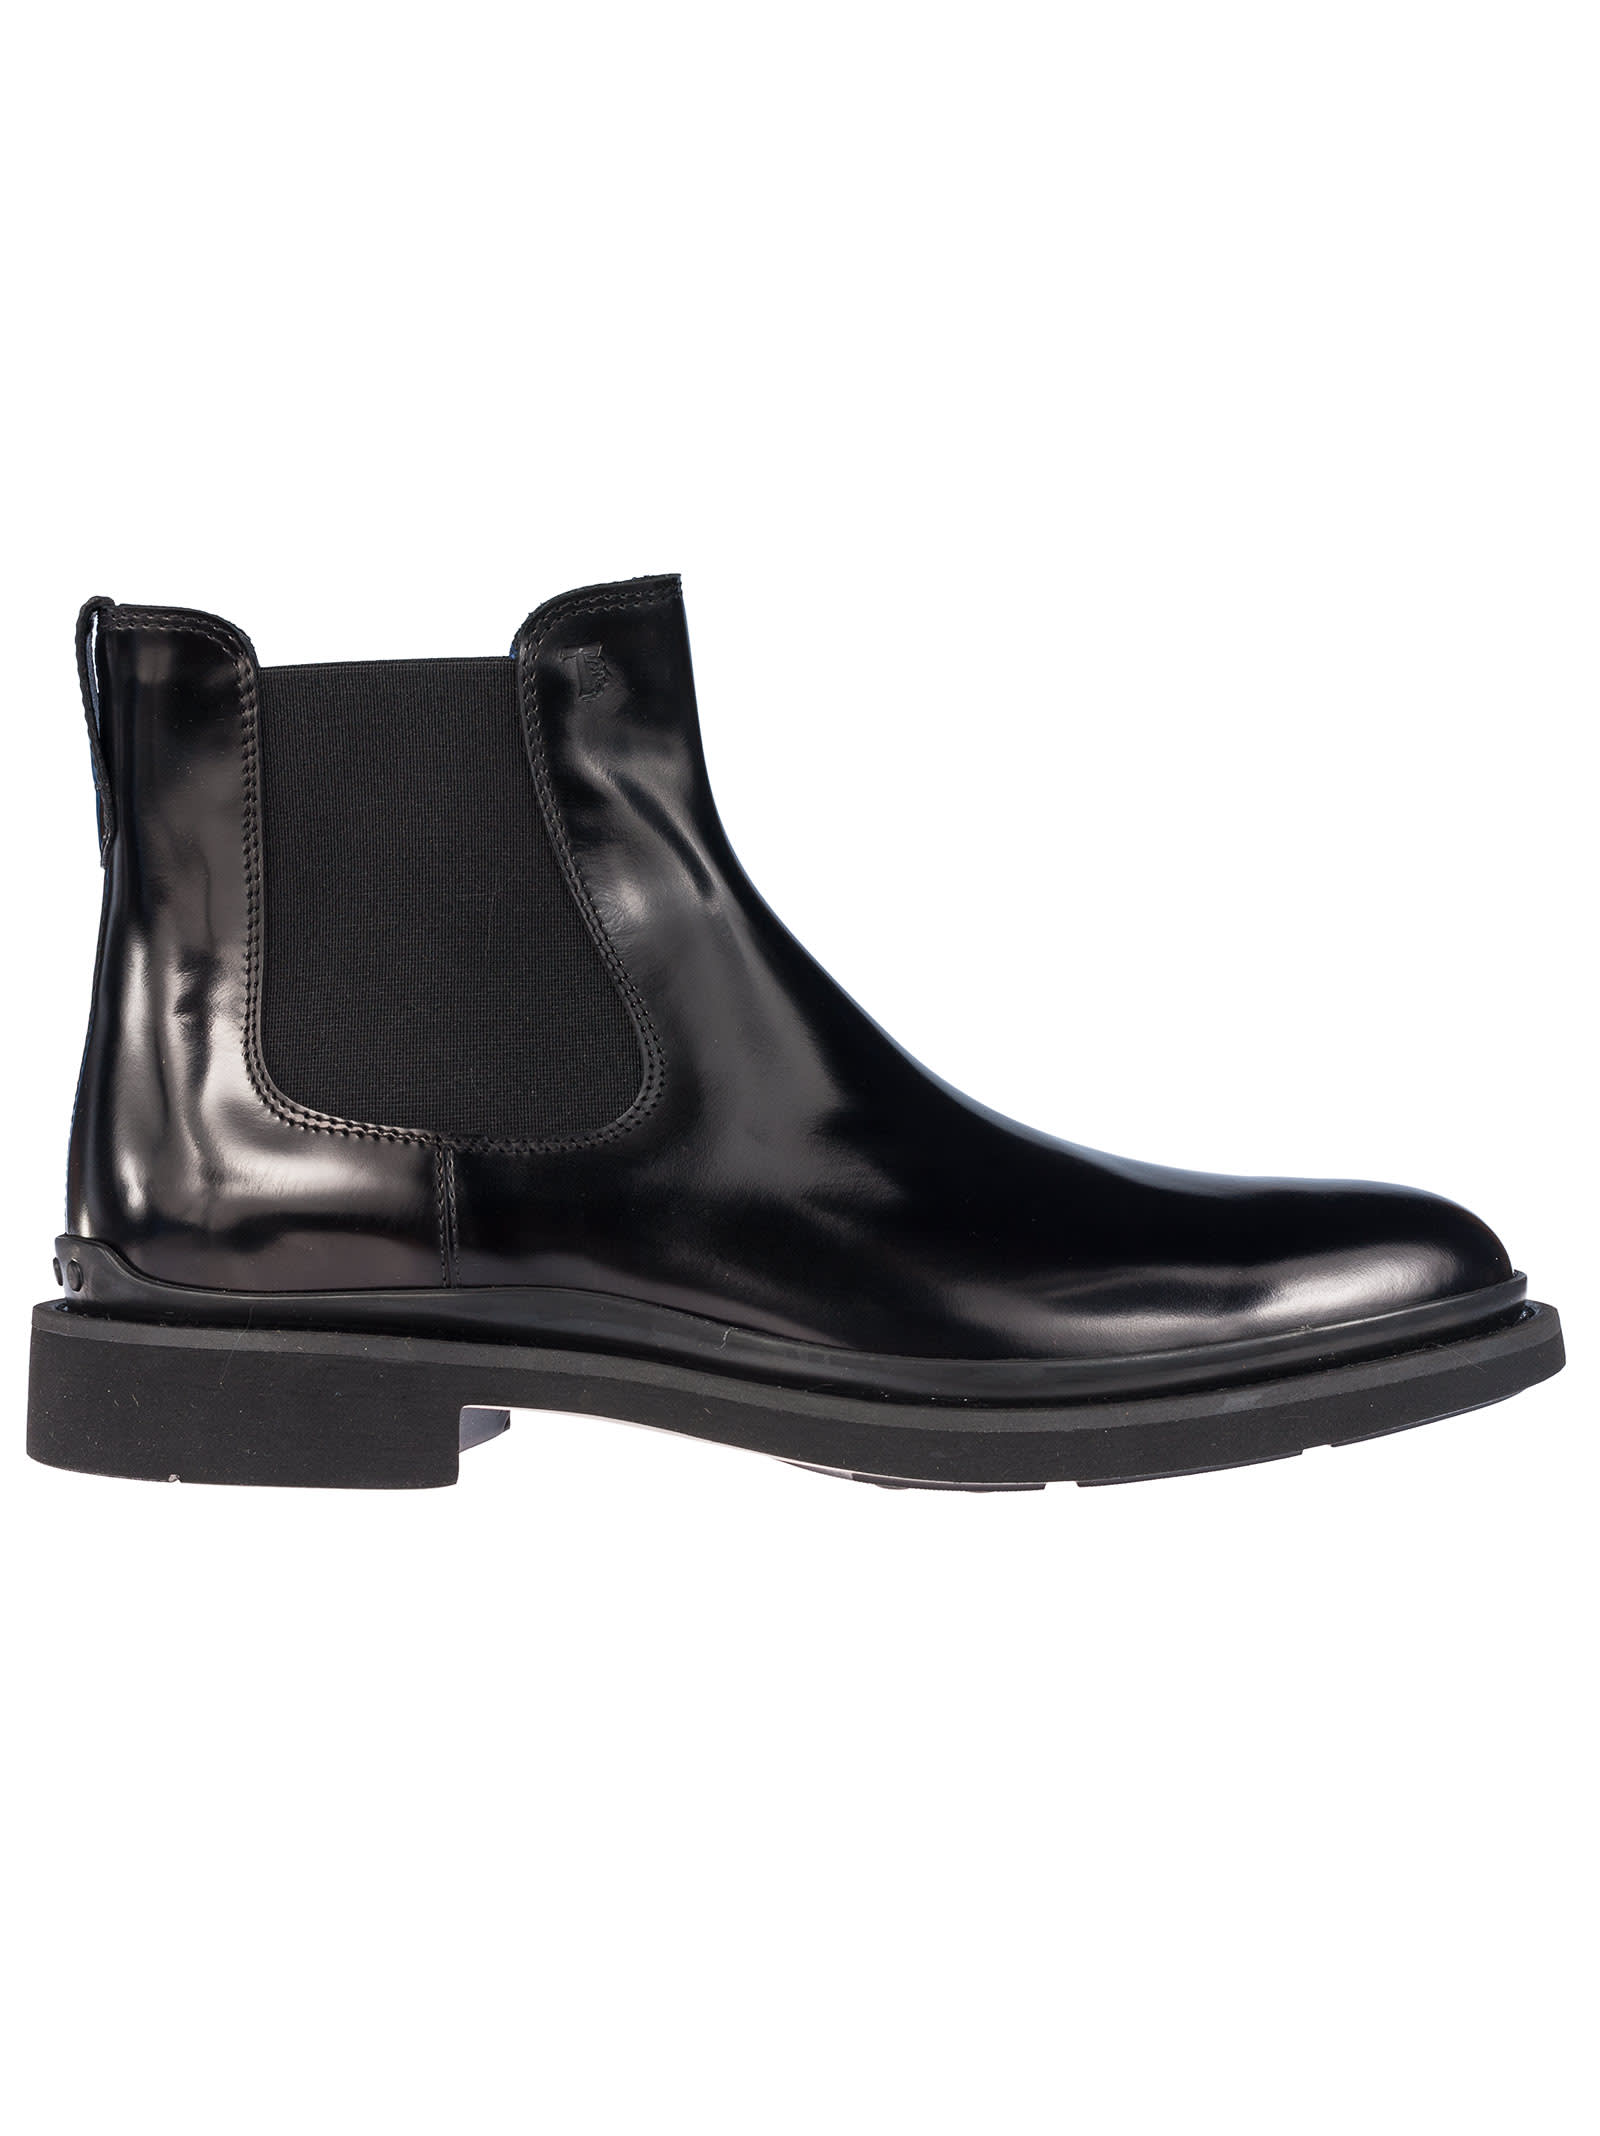 Tods Classic Boots